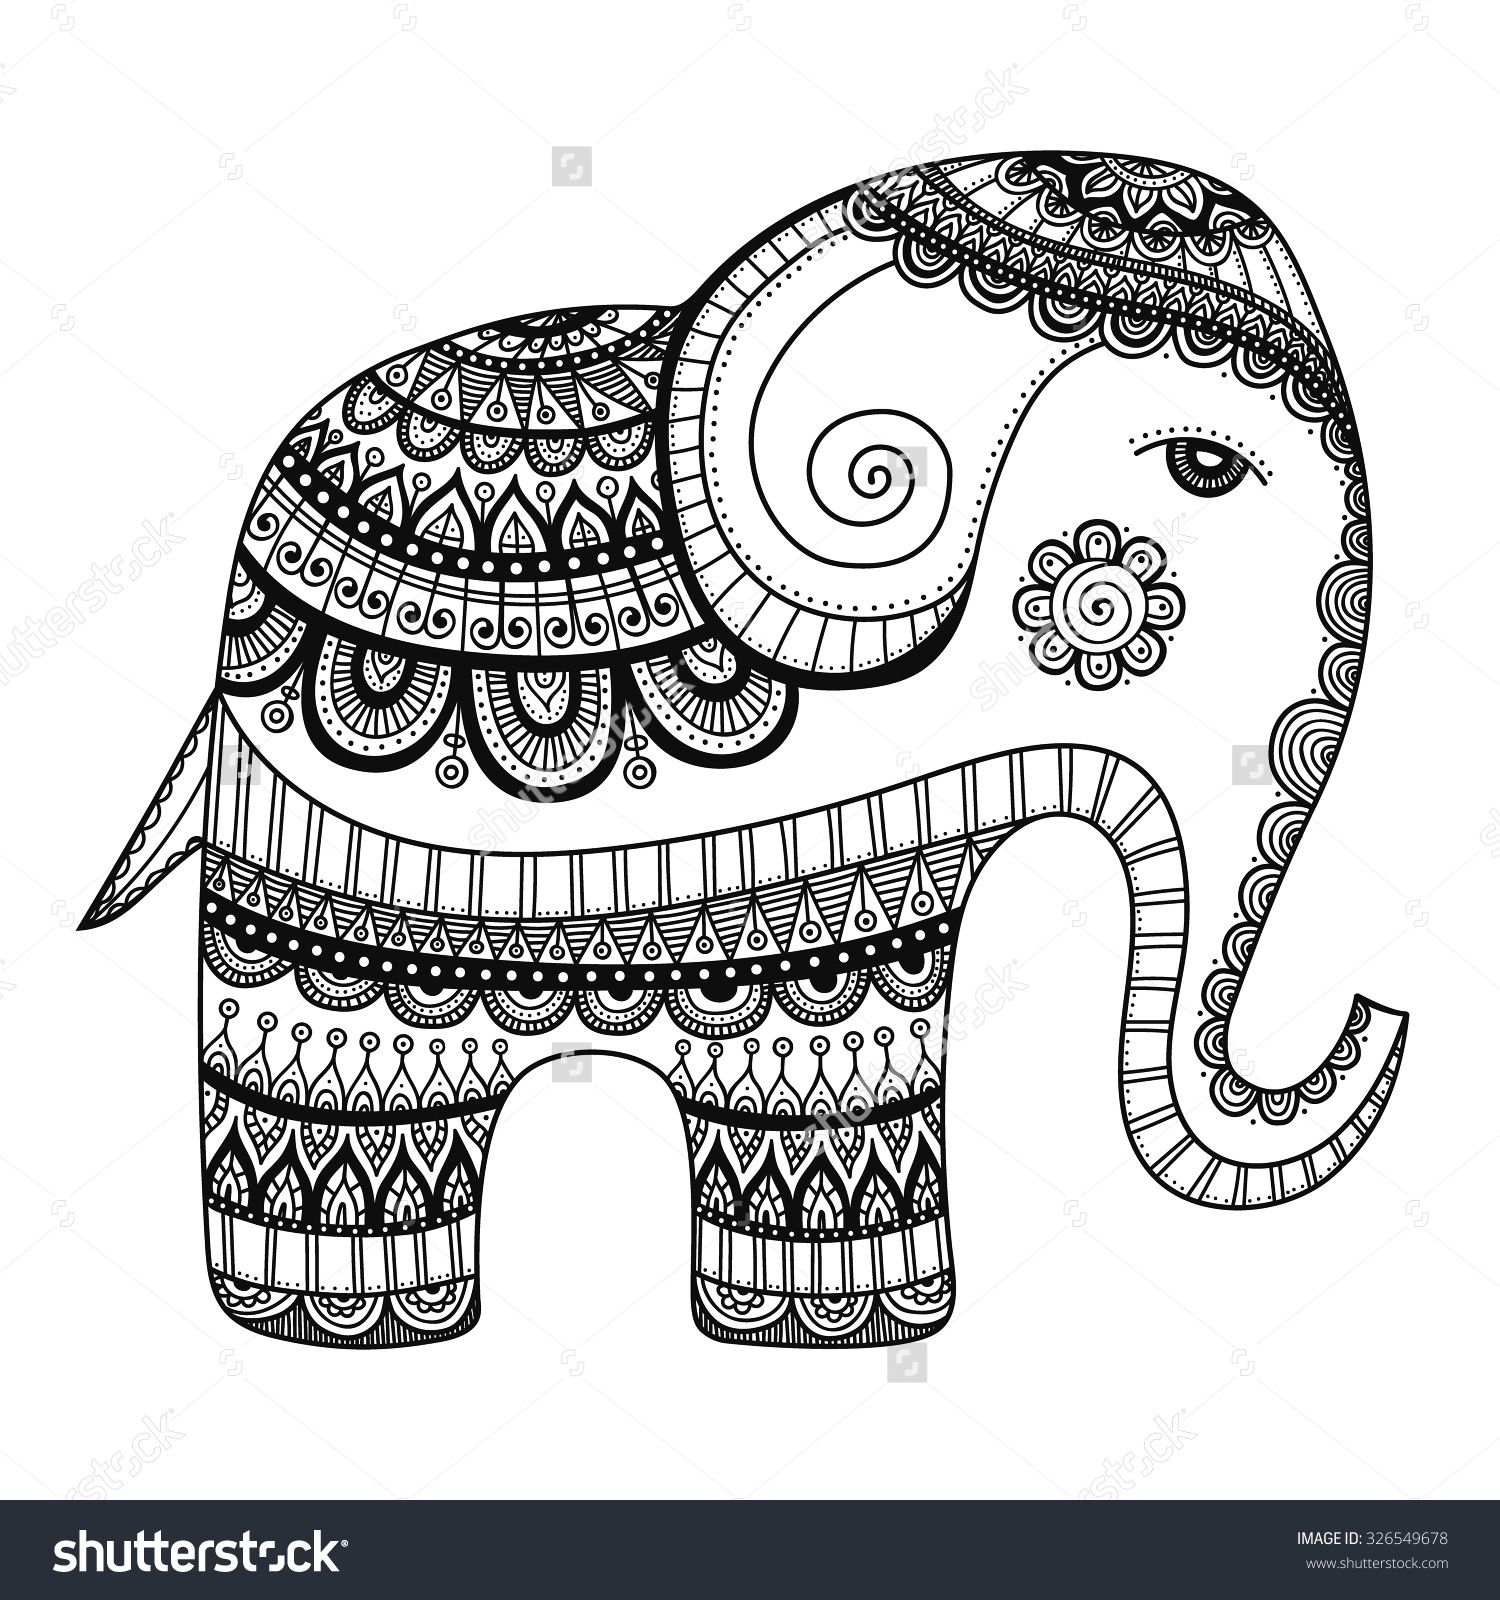 Indian Tribal Coloring Pages. Indian Elephant  Hand Drawn Doodle With Tribal